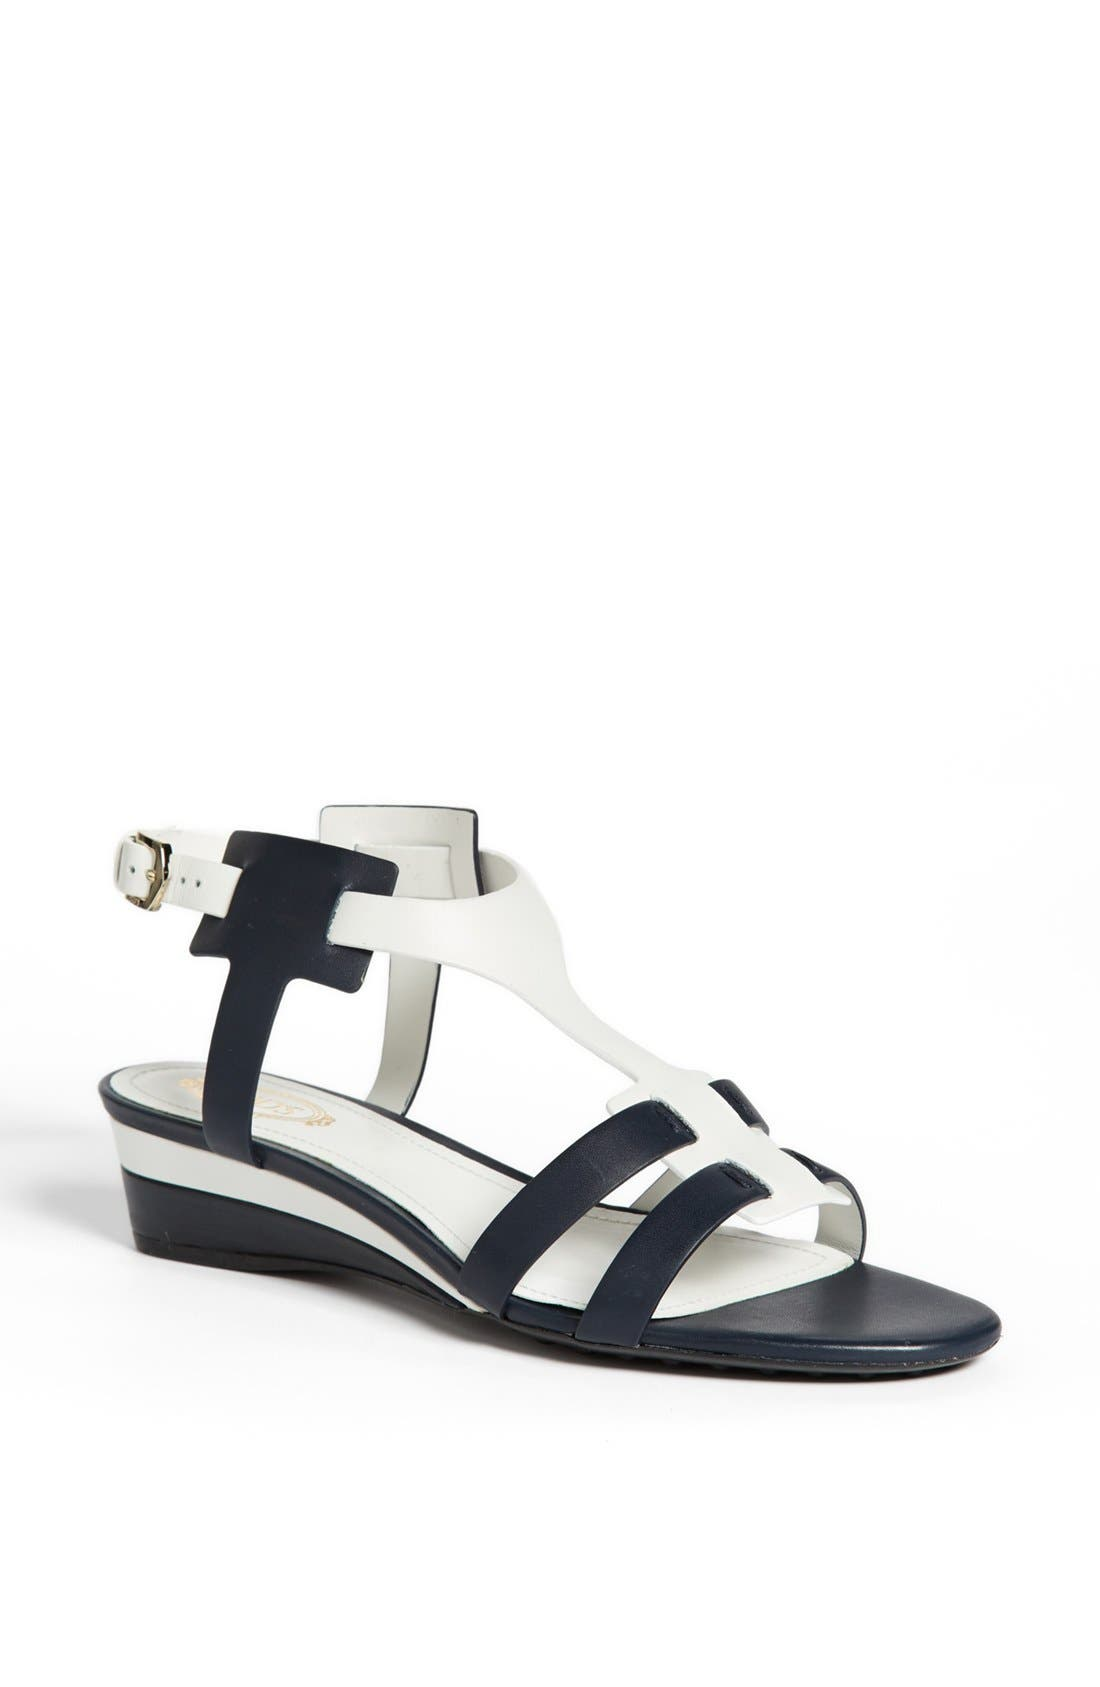 Alternate Image 1 Selected - Tod's 'Zeppa' Wedge Sandal